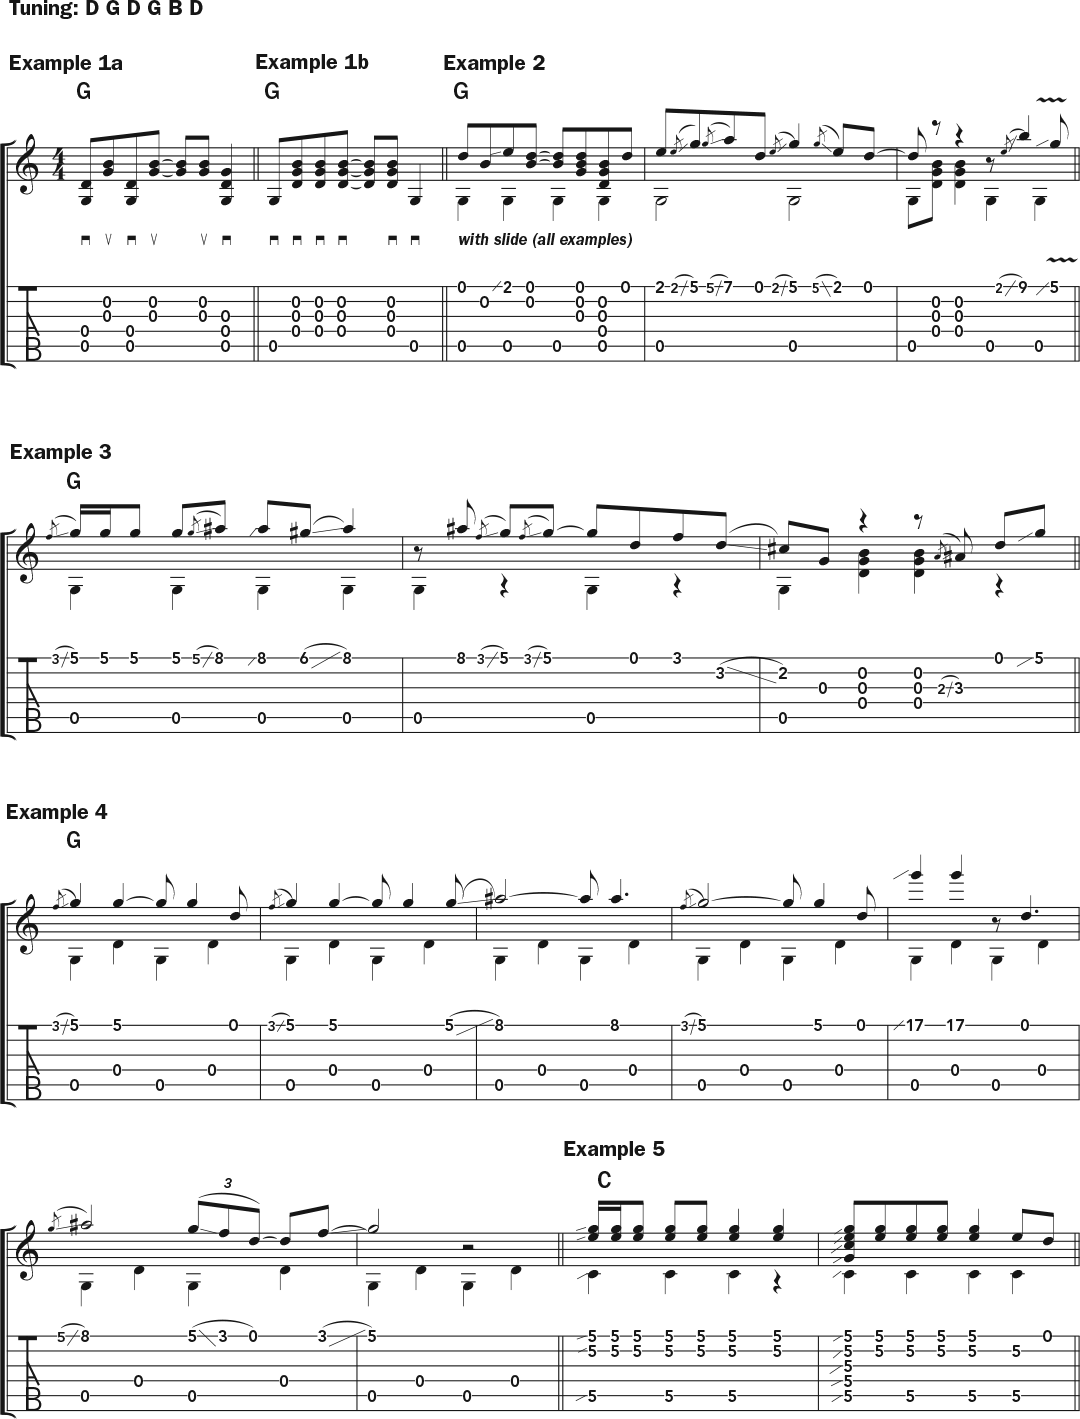 Musical examples 1 through 5 in standard notation and TAB